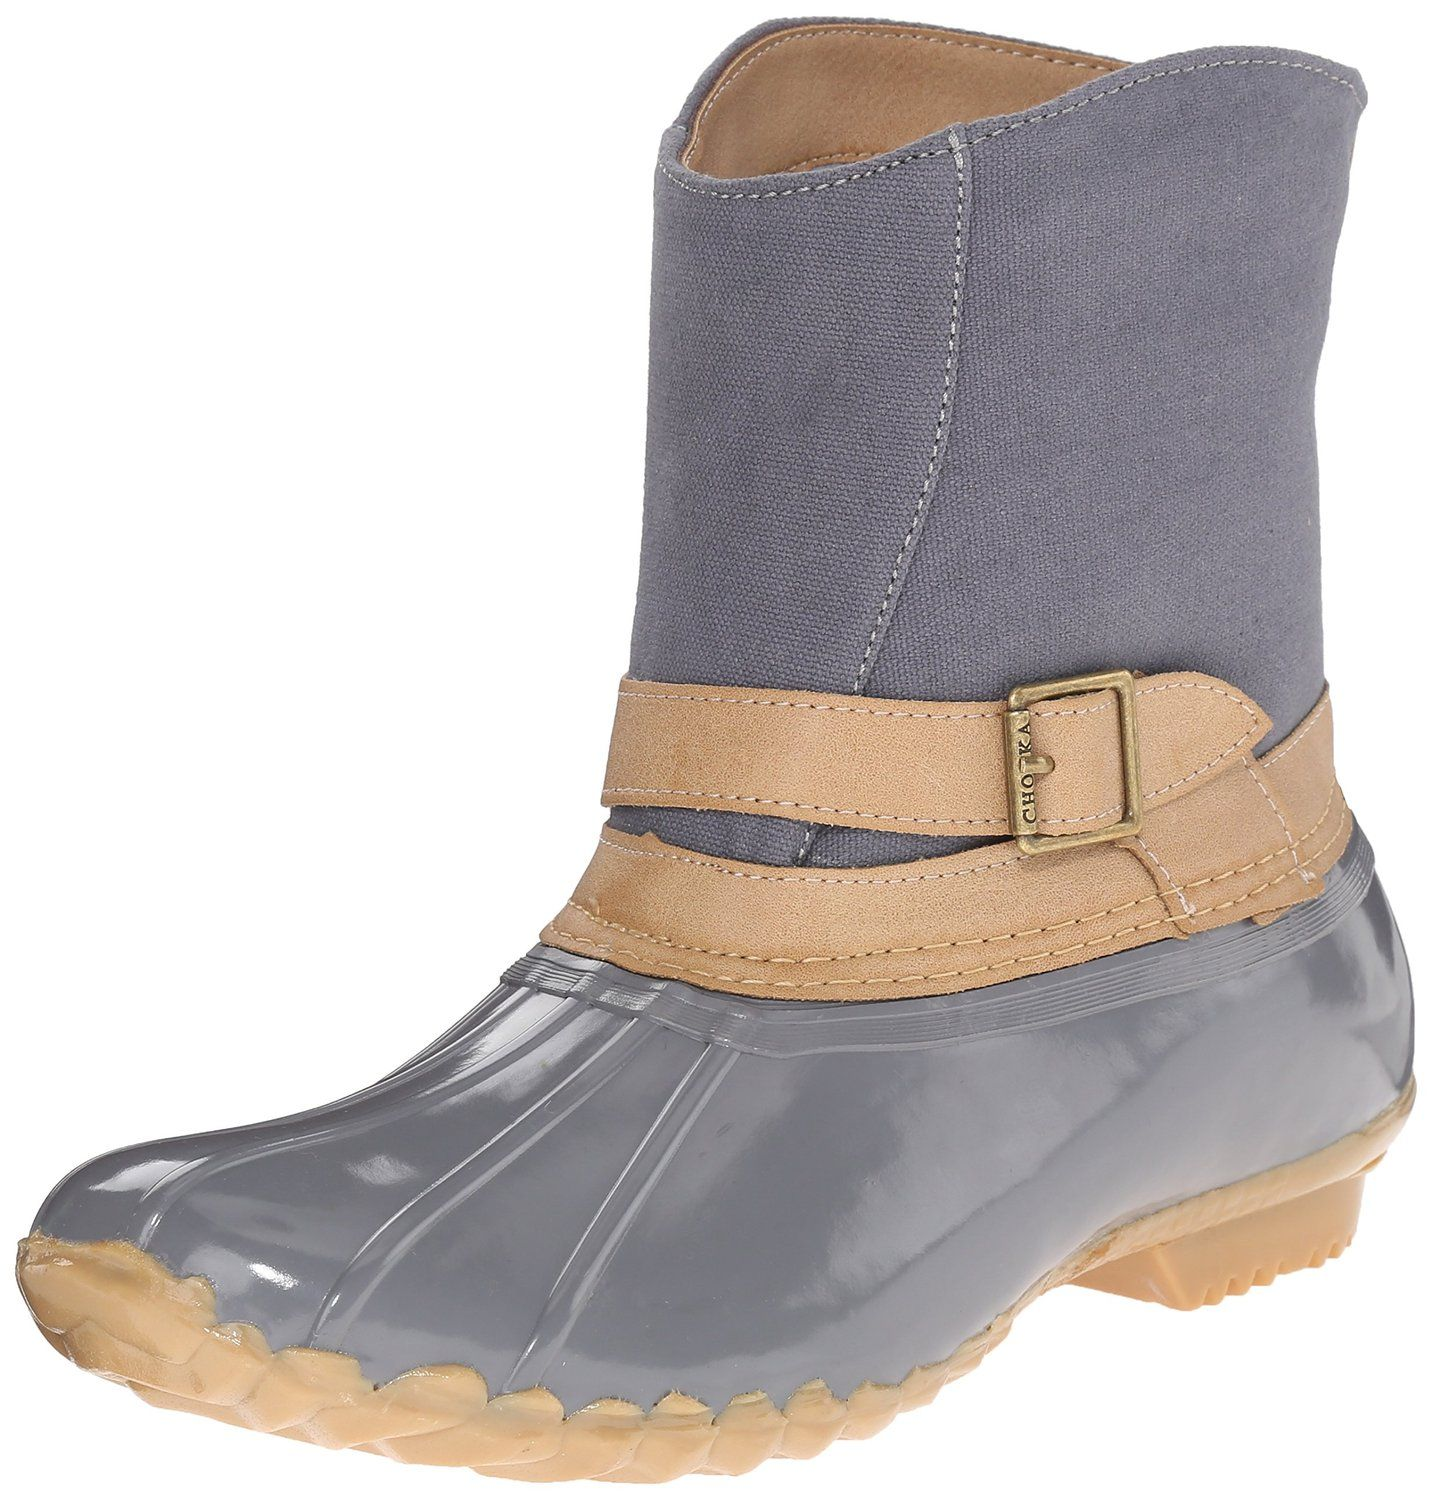 Chooka Women's Canvas Step-In Duck Ankle Rain Boot, Gray, 6 M US.  Weather-resistant duck boot with canvas shaft featuring distressed  faux-leather strap with ...